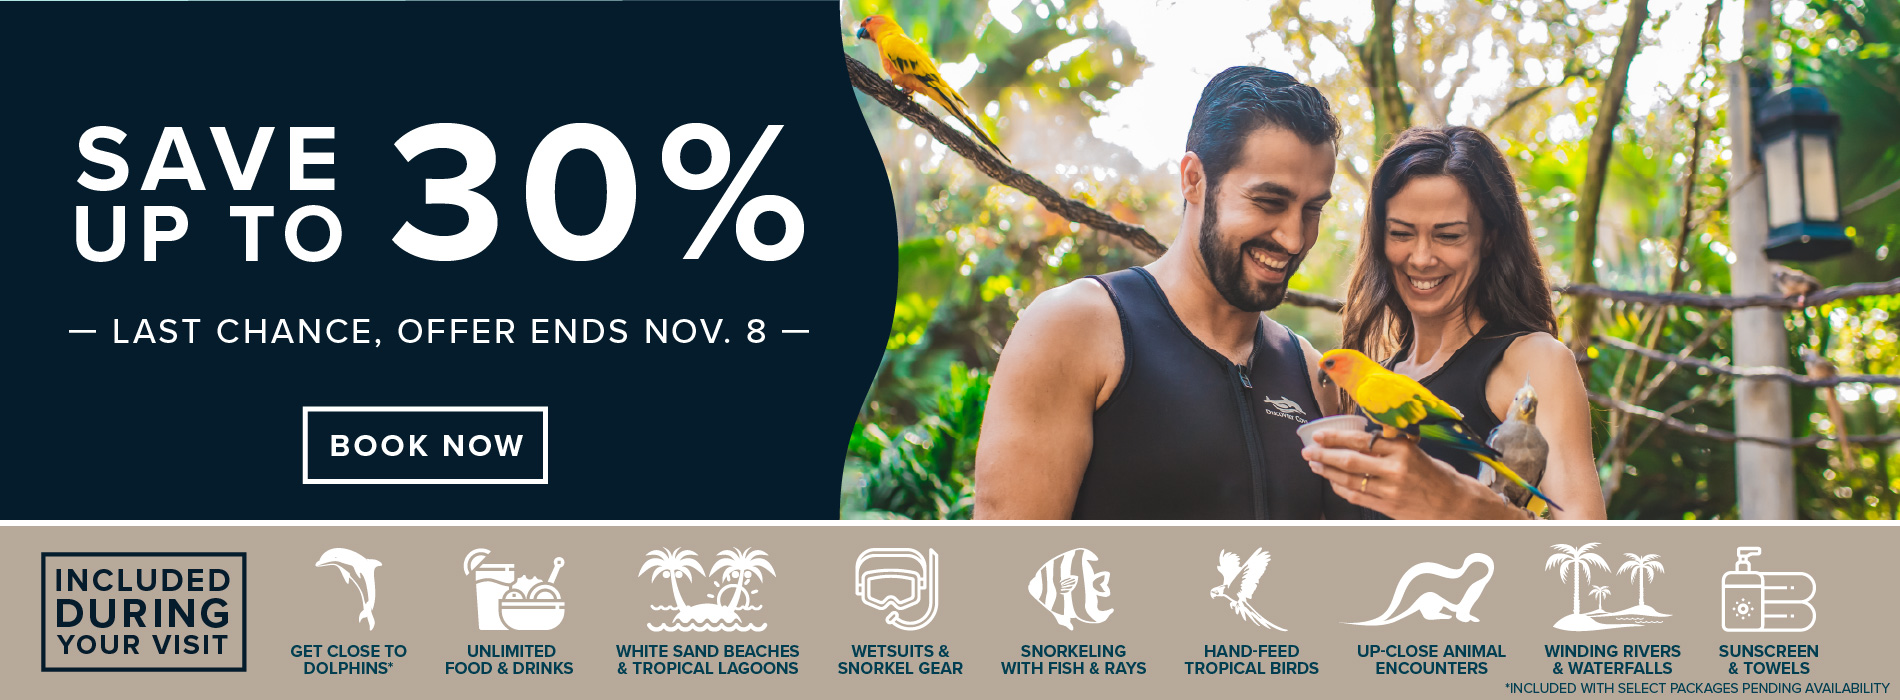 Discovery Cove Save up to 30%